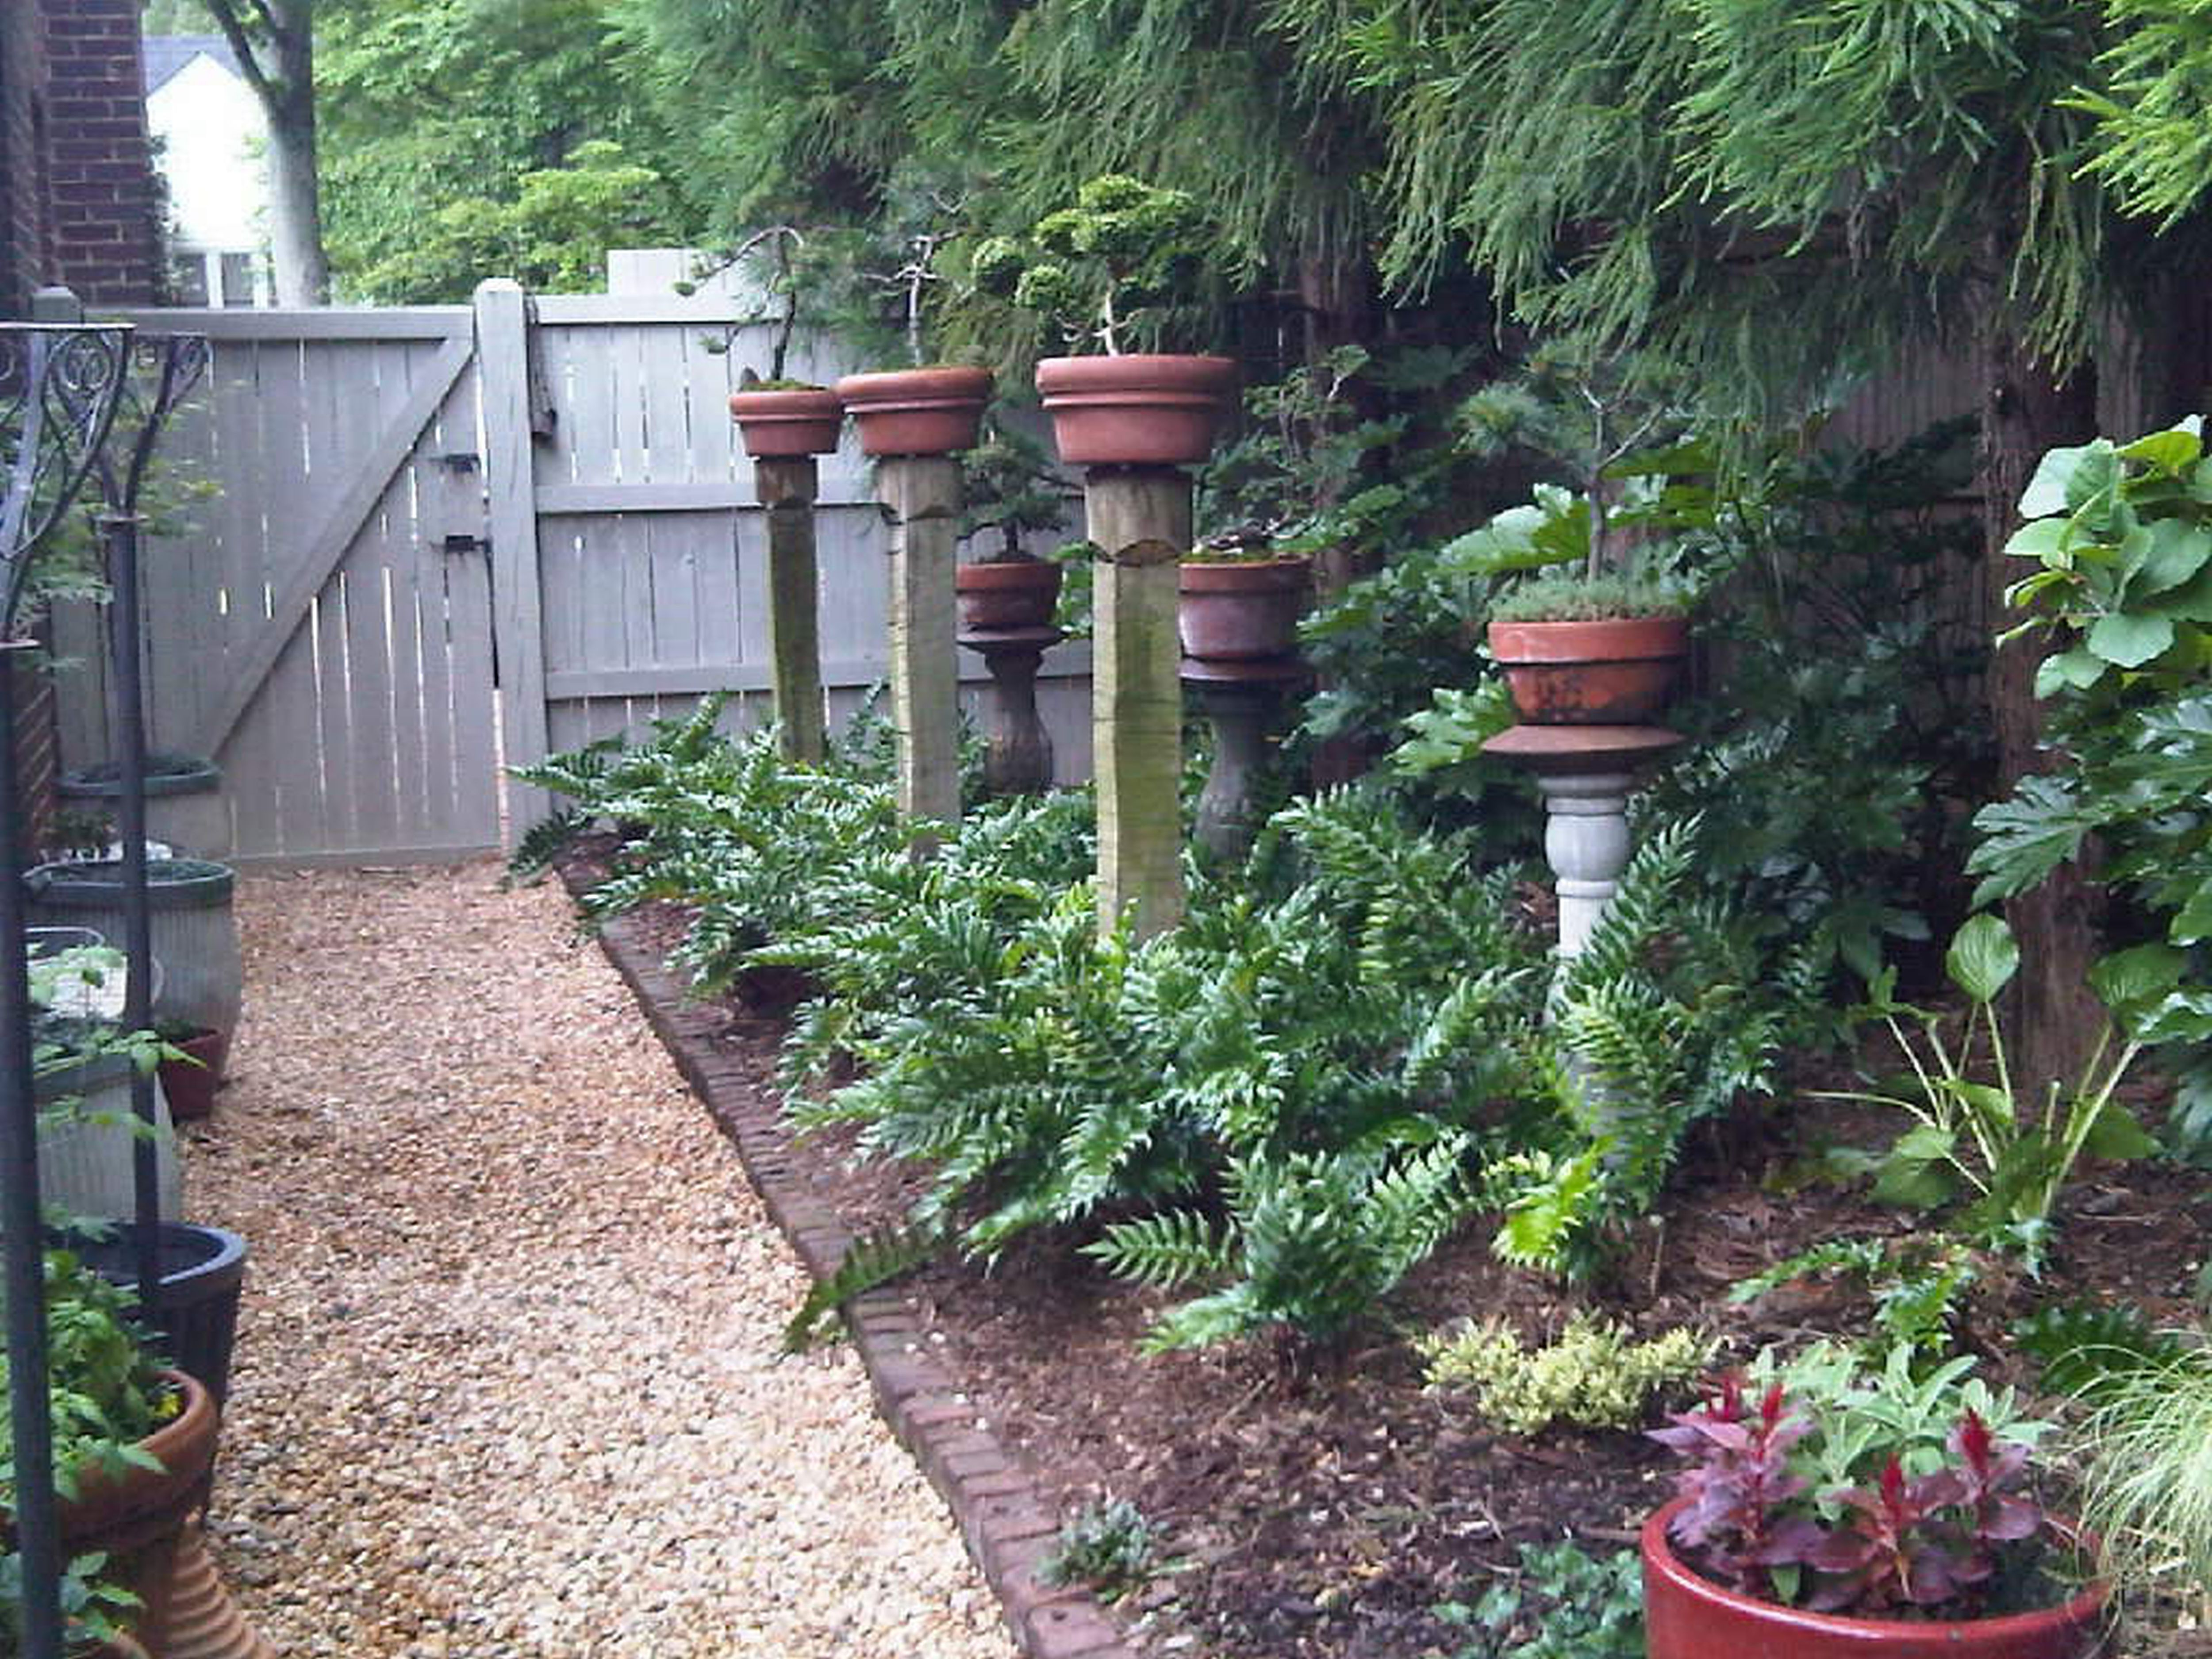 Agreeable Landscaping Ideas For Small Yards Complexion Entrancing